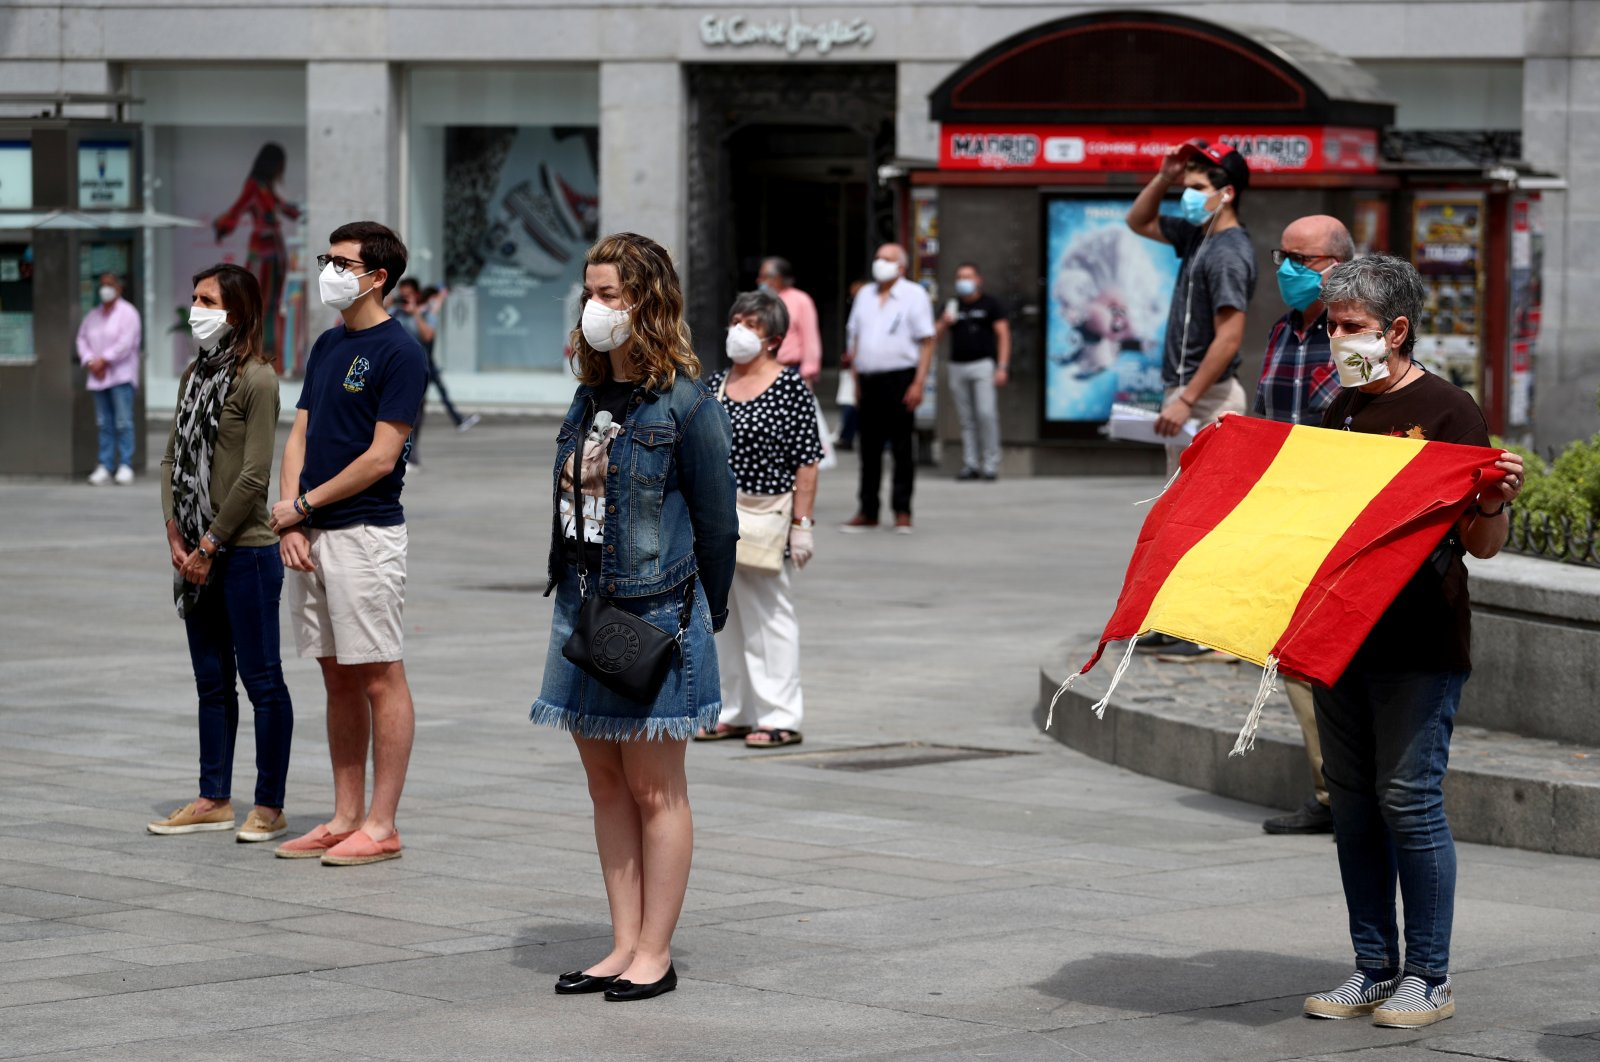 People wearing protective face masks stand during a daily minute of silence to commemorate victims of the coronavirus disease (COVID-19), at Puerta del Sol square in Madrid, Spain, May 26, 2020. (Reuters Photo)